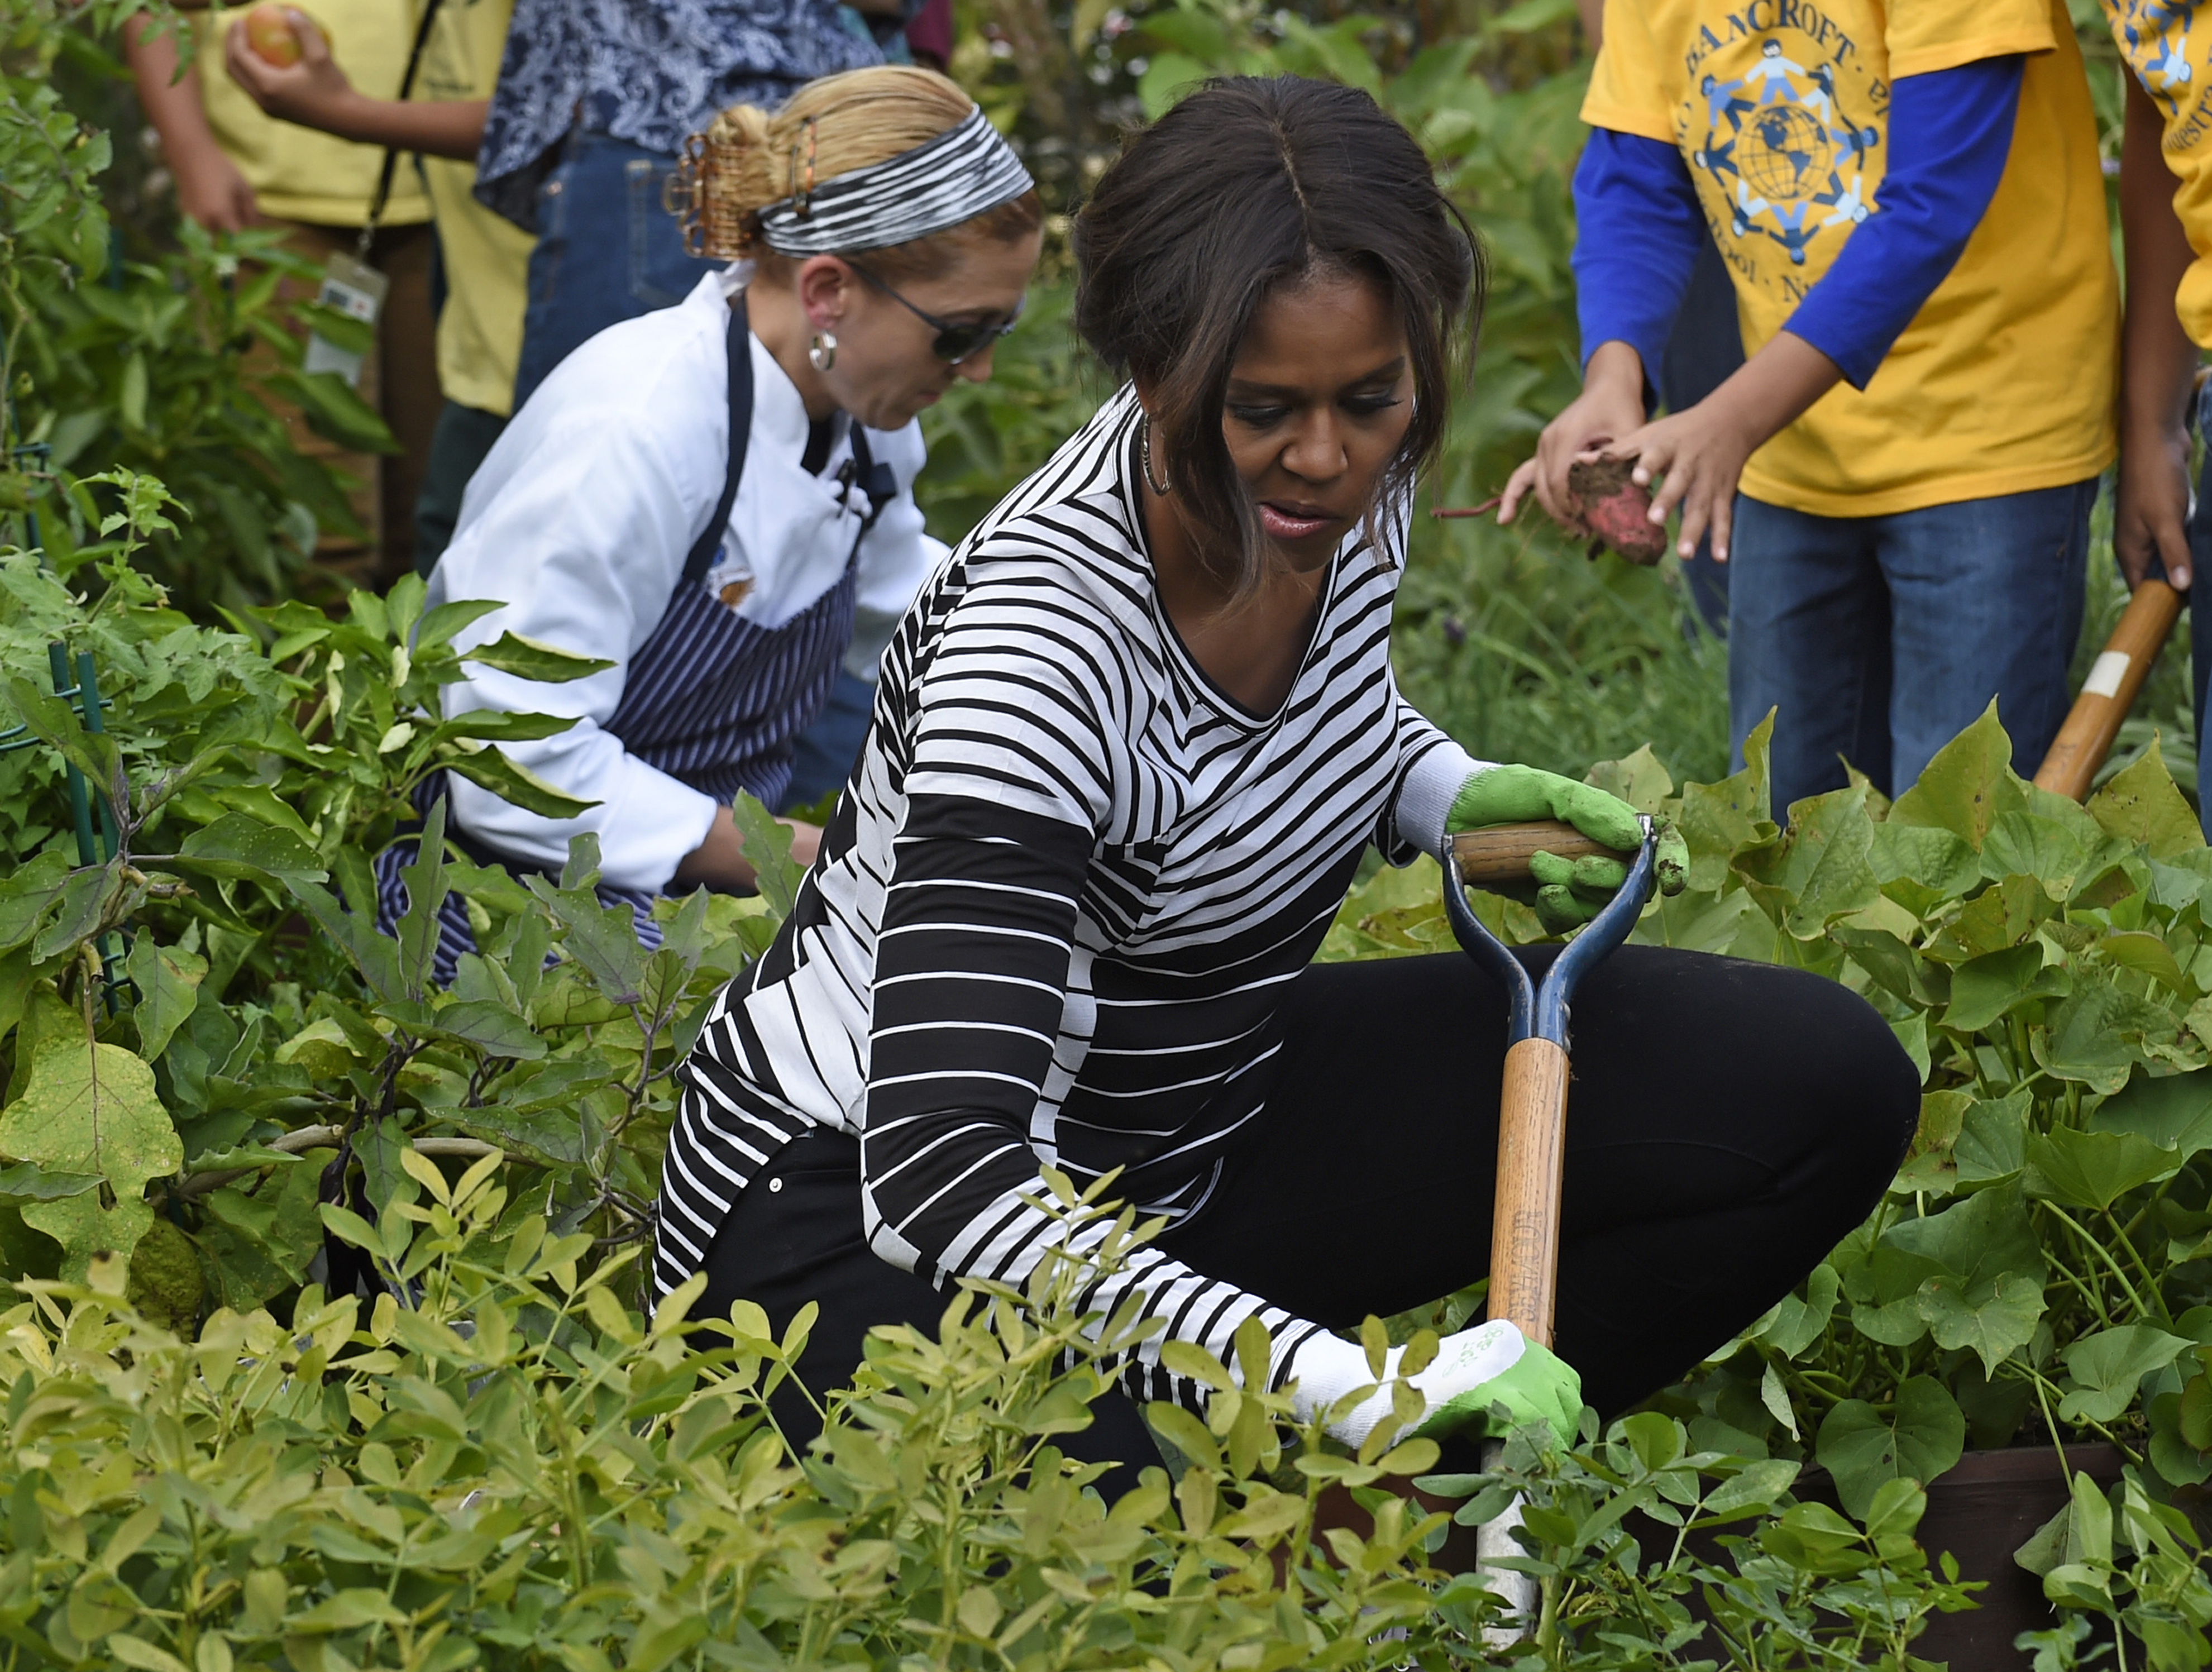 First Lady Michelle Obama is joined by school children as they harvest peanuts in the annual fall harvest at the White House on Oct. 14, 2014